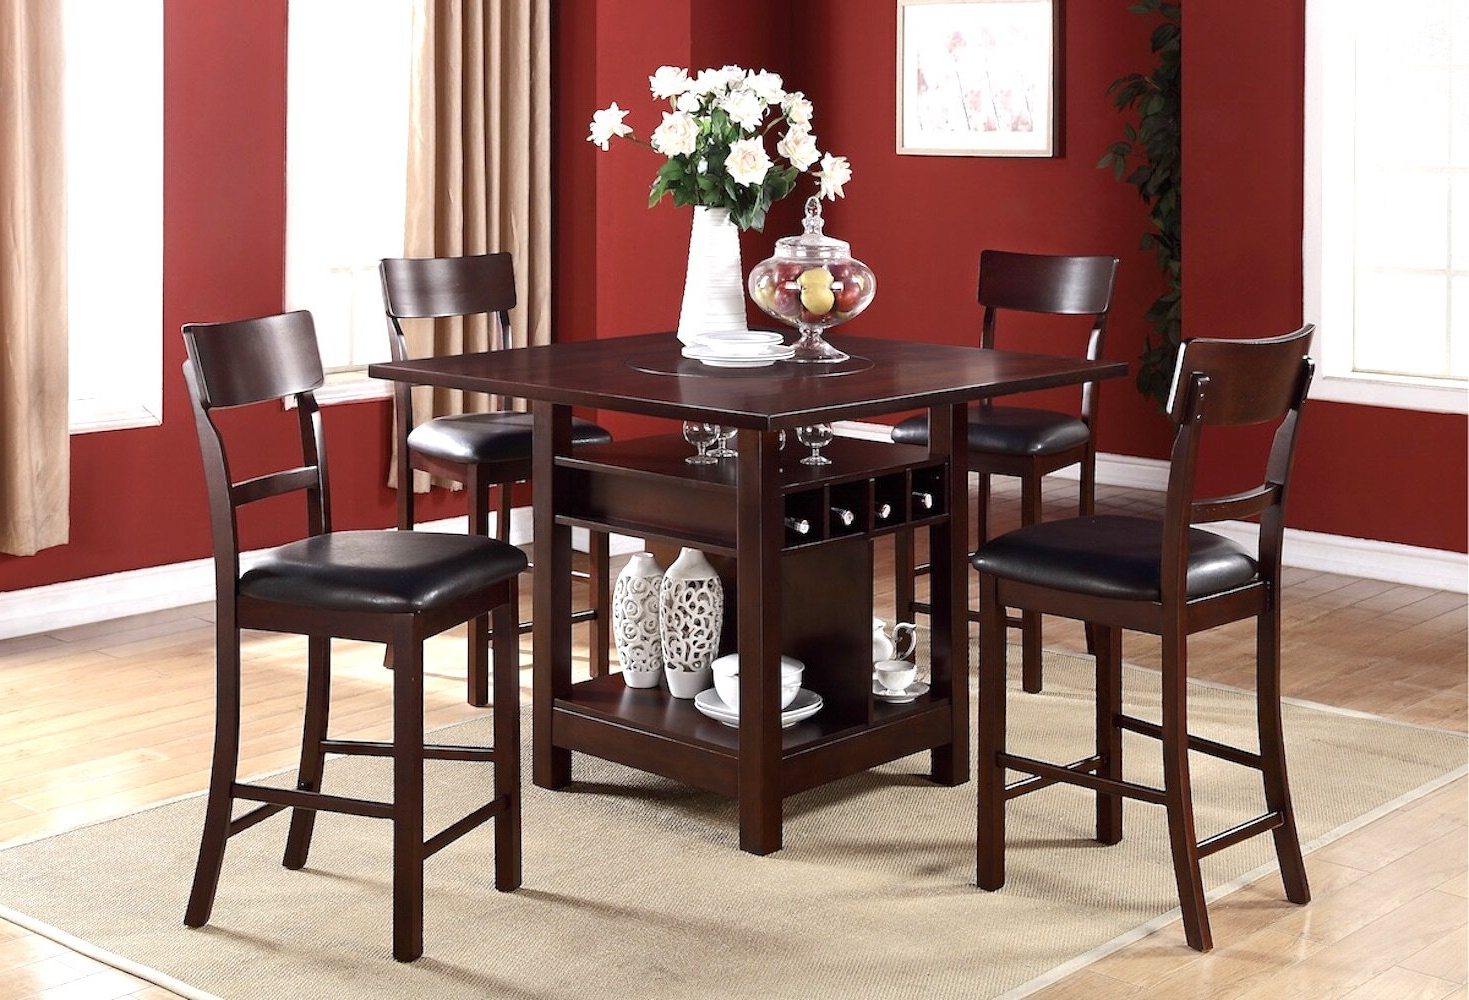 Fashionable Biggs 5 Piece Counter Height Solid Wood Dining Sets (Set Of 5) Intended For Stevenson 5 Piece Pub Table Set (View 11 of 20)